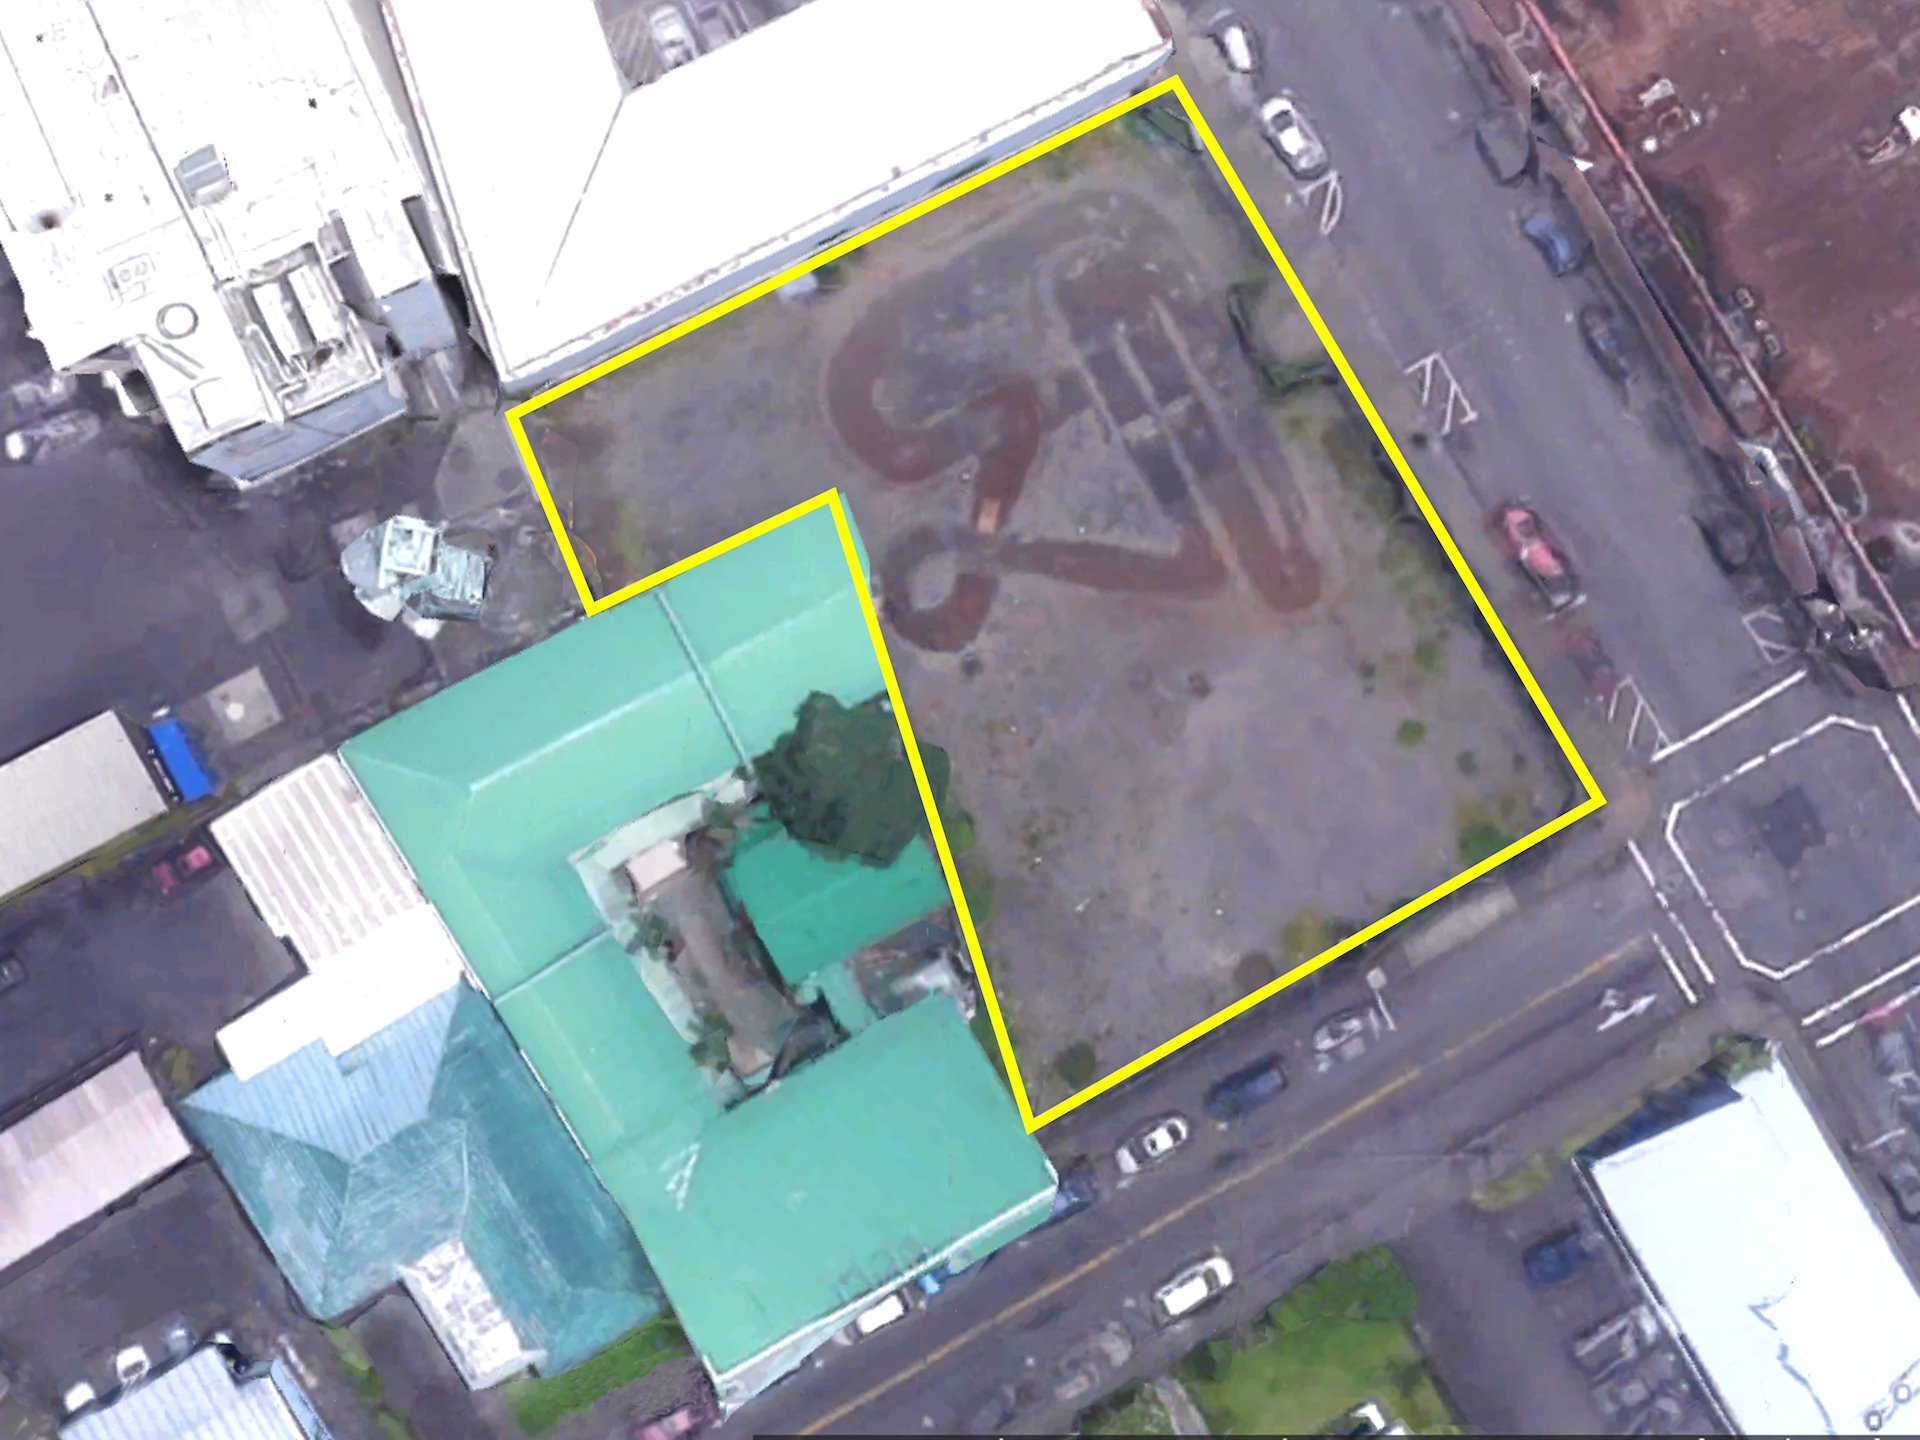 MIXED USE DEVELOPMENT OPPORTUNITY<br>HEART OF DOWNTOWN HILO SHOPPING DISTRICT<br>210 Keawe Street - 19,366 Square Feet<br>Site Lies within Opportunity Zone <br>Numerous Potential County, State and Federal Tax and Zoning Advantages<br>Current Proposed Configuration includes 39 Conventional Apartment Units or 43 Affordable Units.  Plus 5,000 to 10,000 Square Feet of Ground Floor Retail and 12,000 Square Feet of Second Floor Office and/or Retail<br>Currently being used as a parking lot<br>Site Walkable Within Minutes of Shopping, Restaurants and Hilo Bay